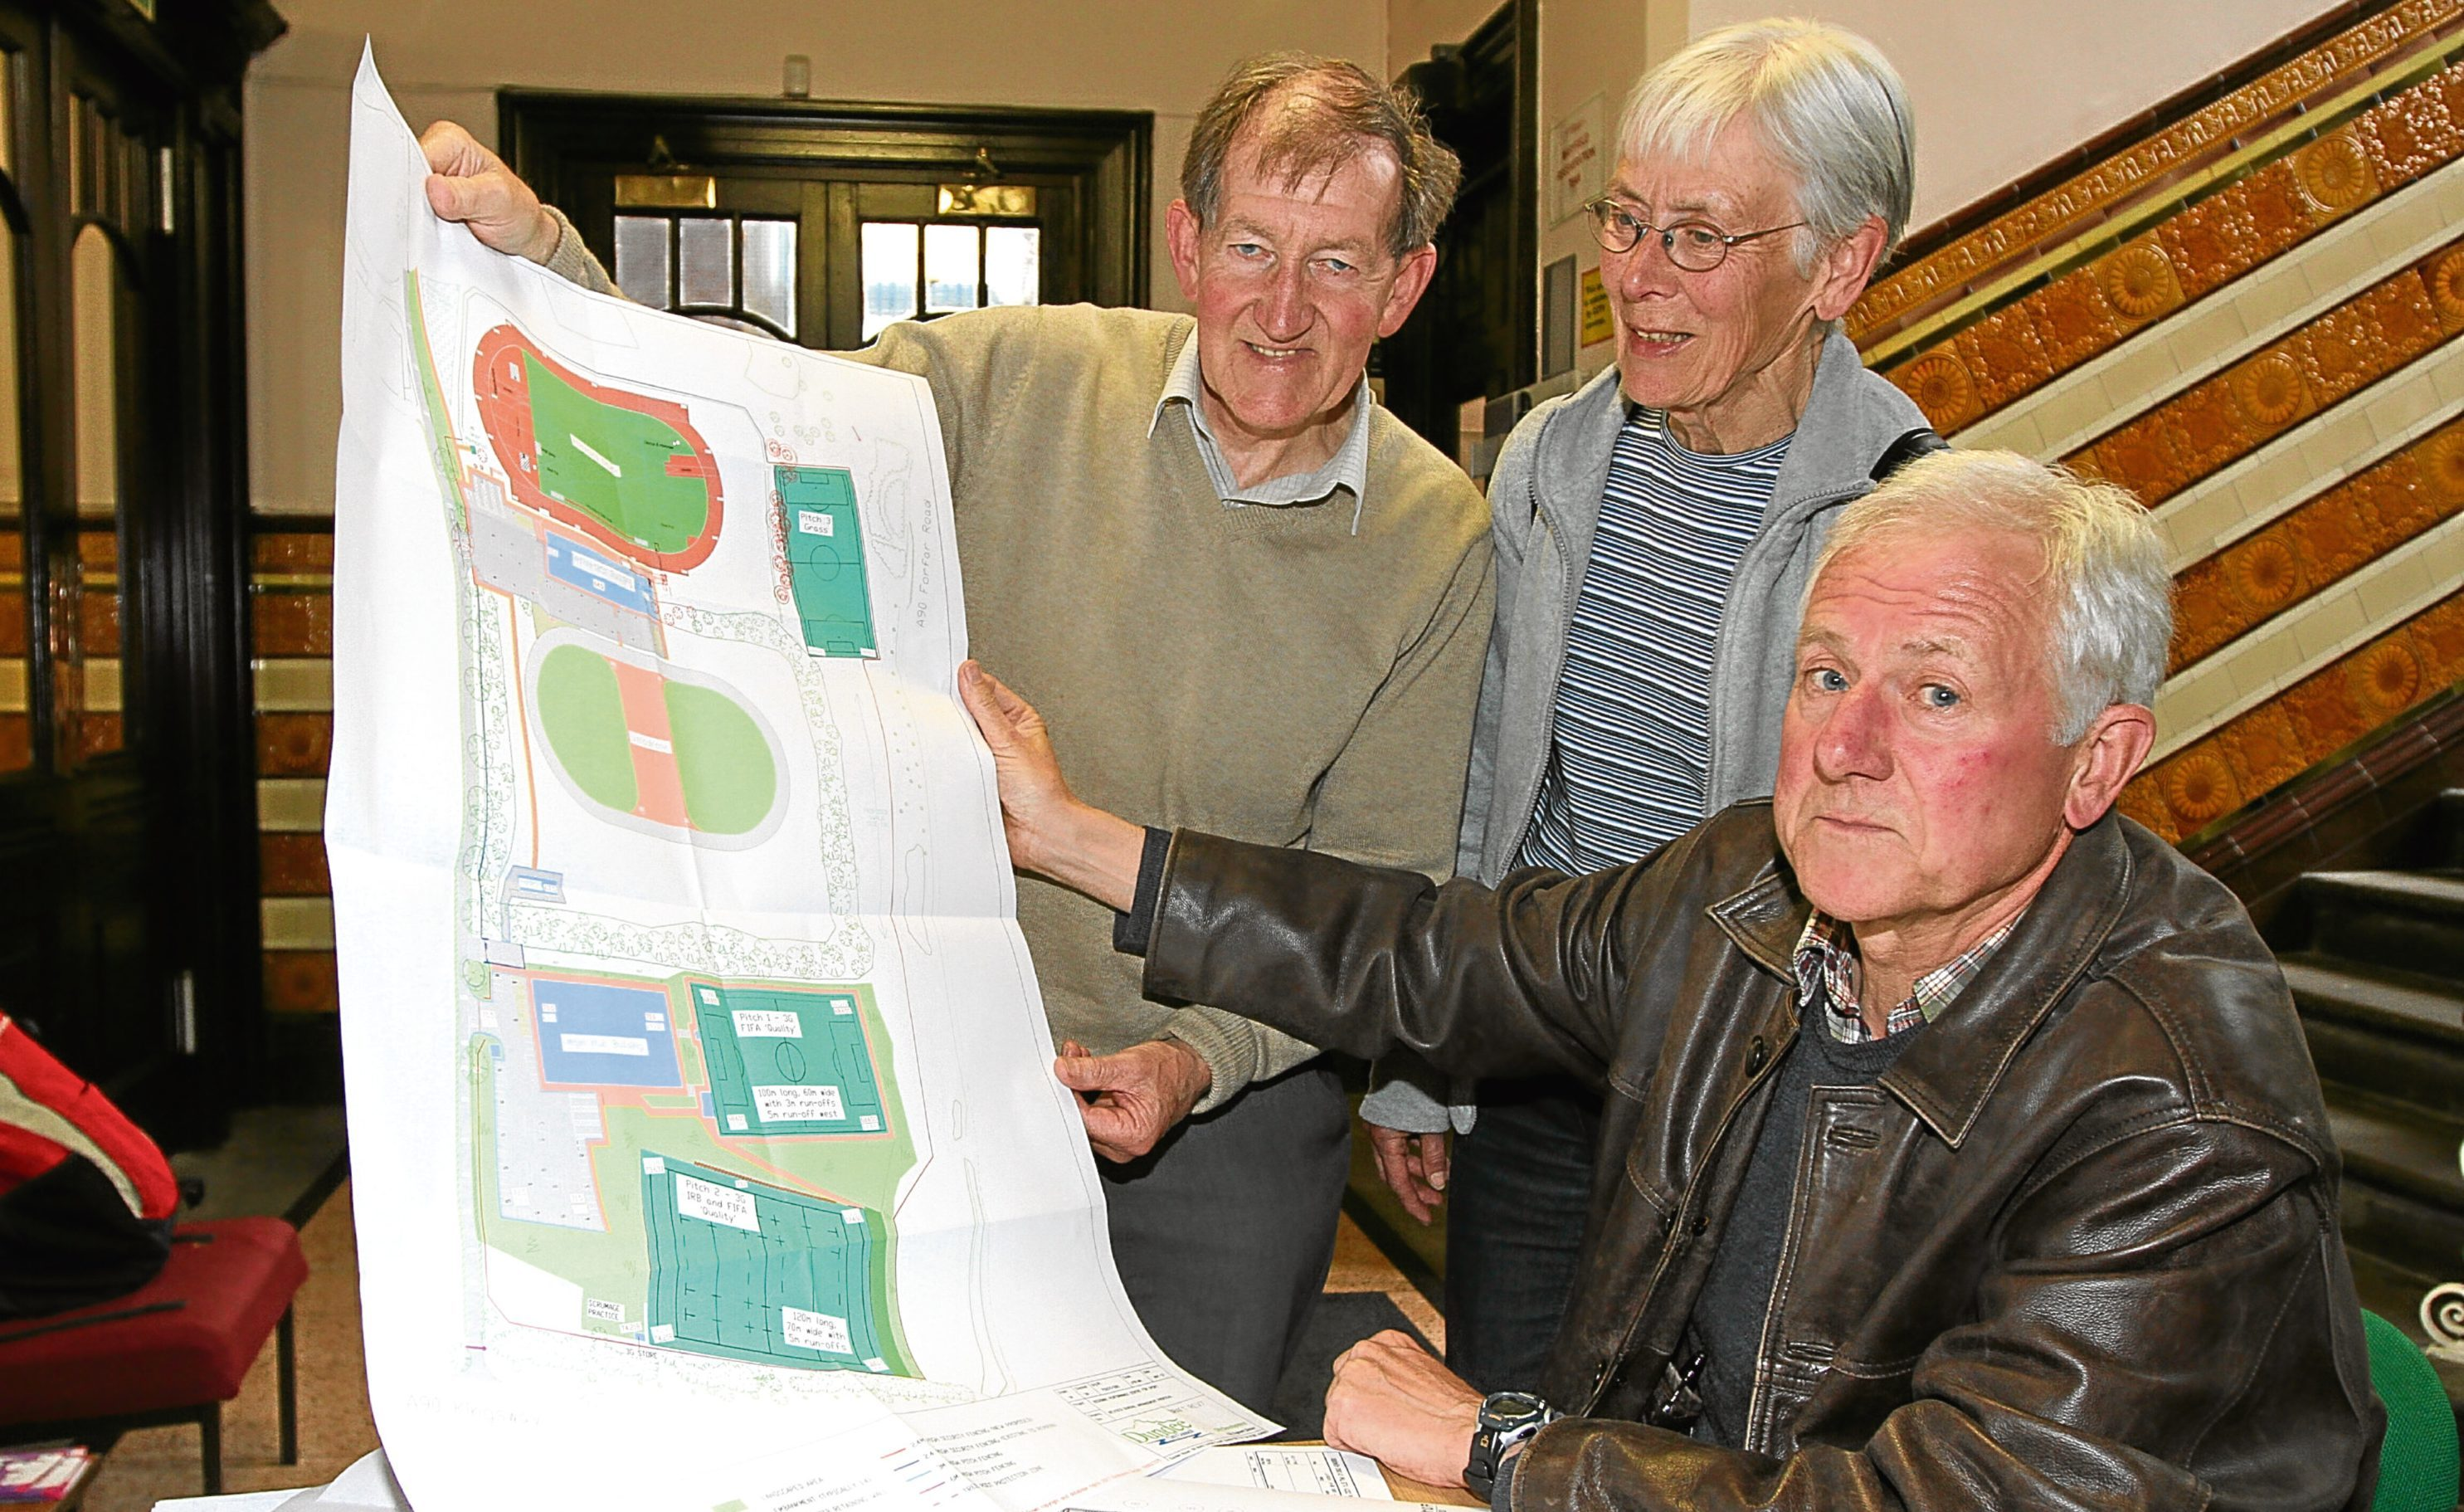 Ron Oliver, Barbara Oliver and Dave Hamilton look at the new plans for the Caird Park sports complex.